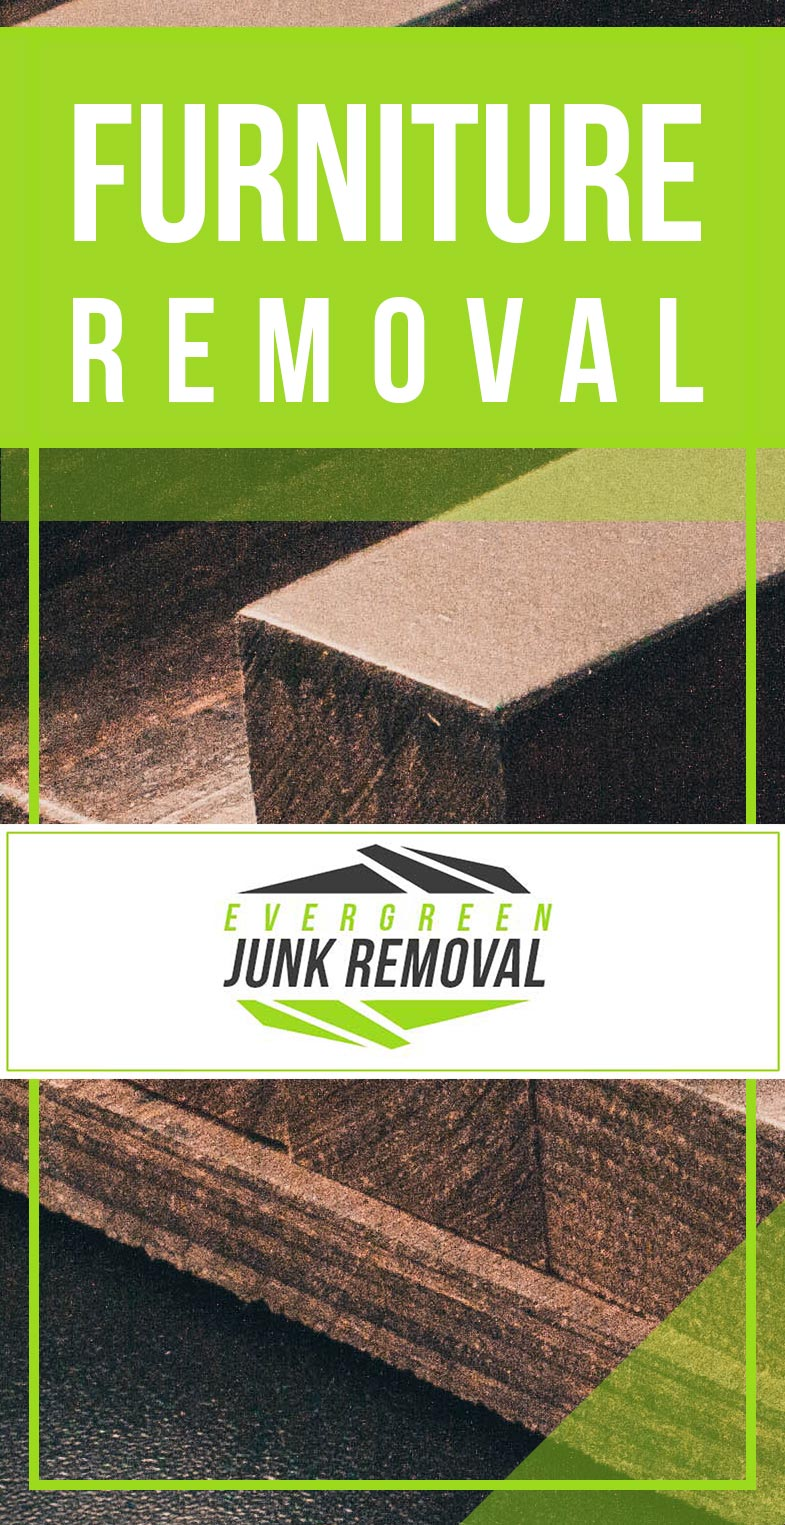 Junk Removal Cooper City Furniture Removal